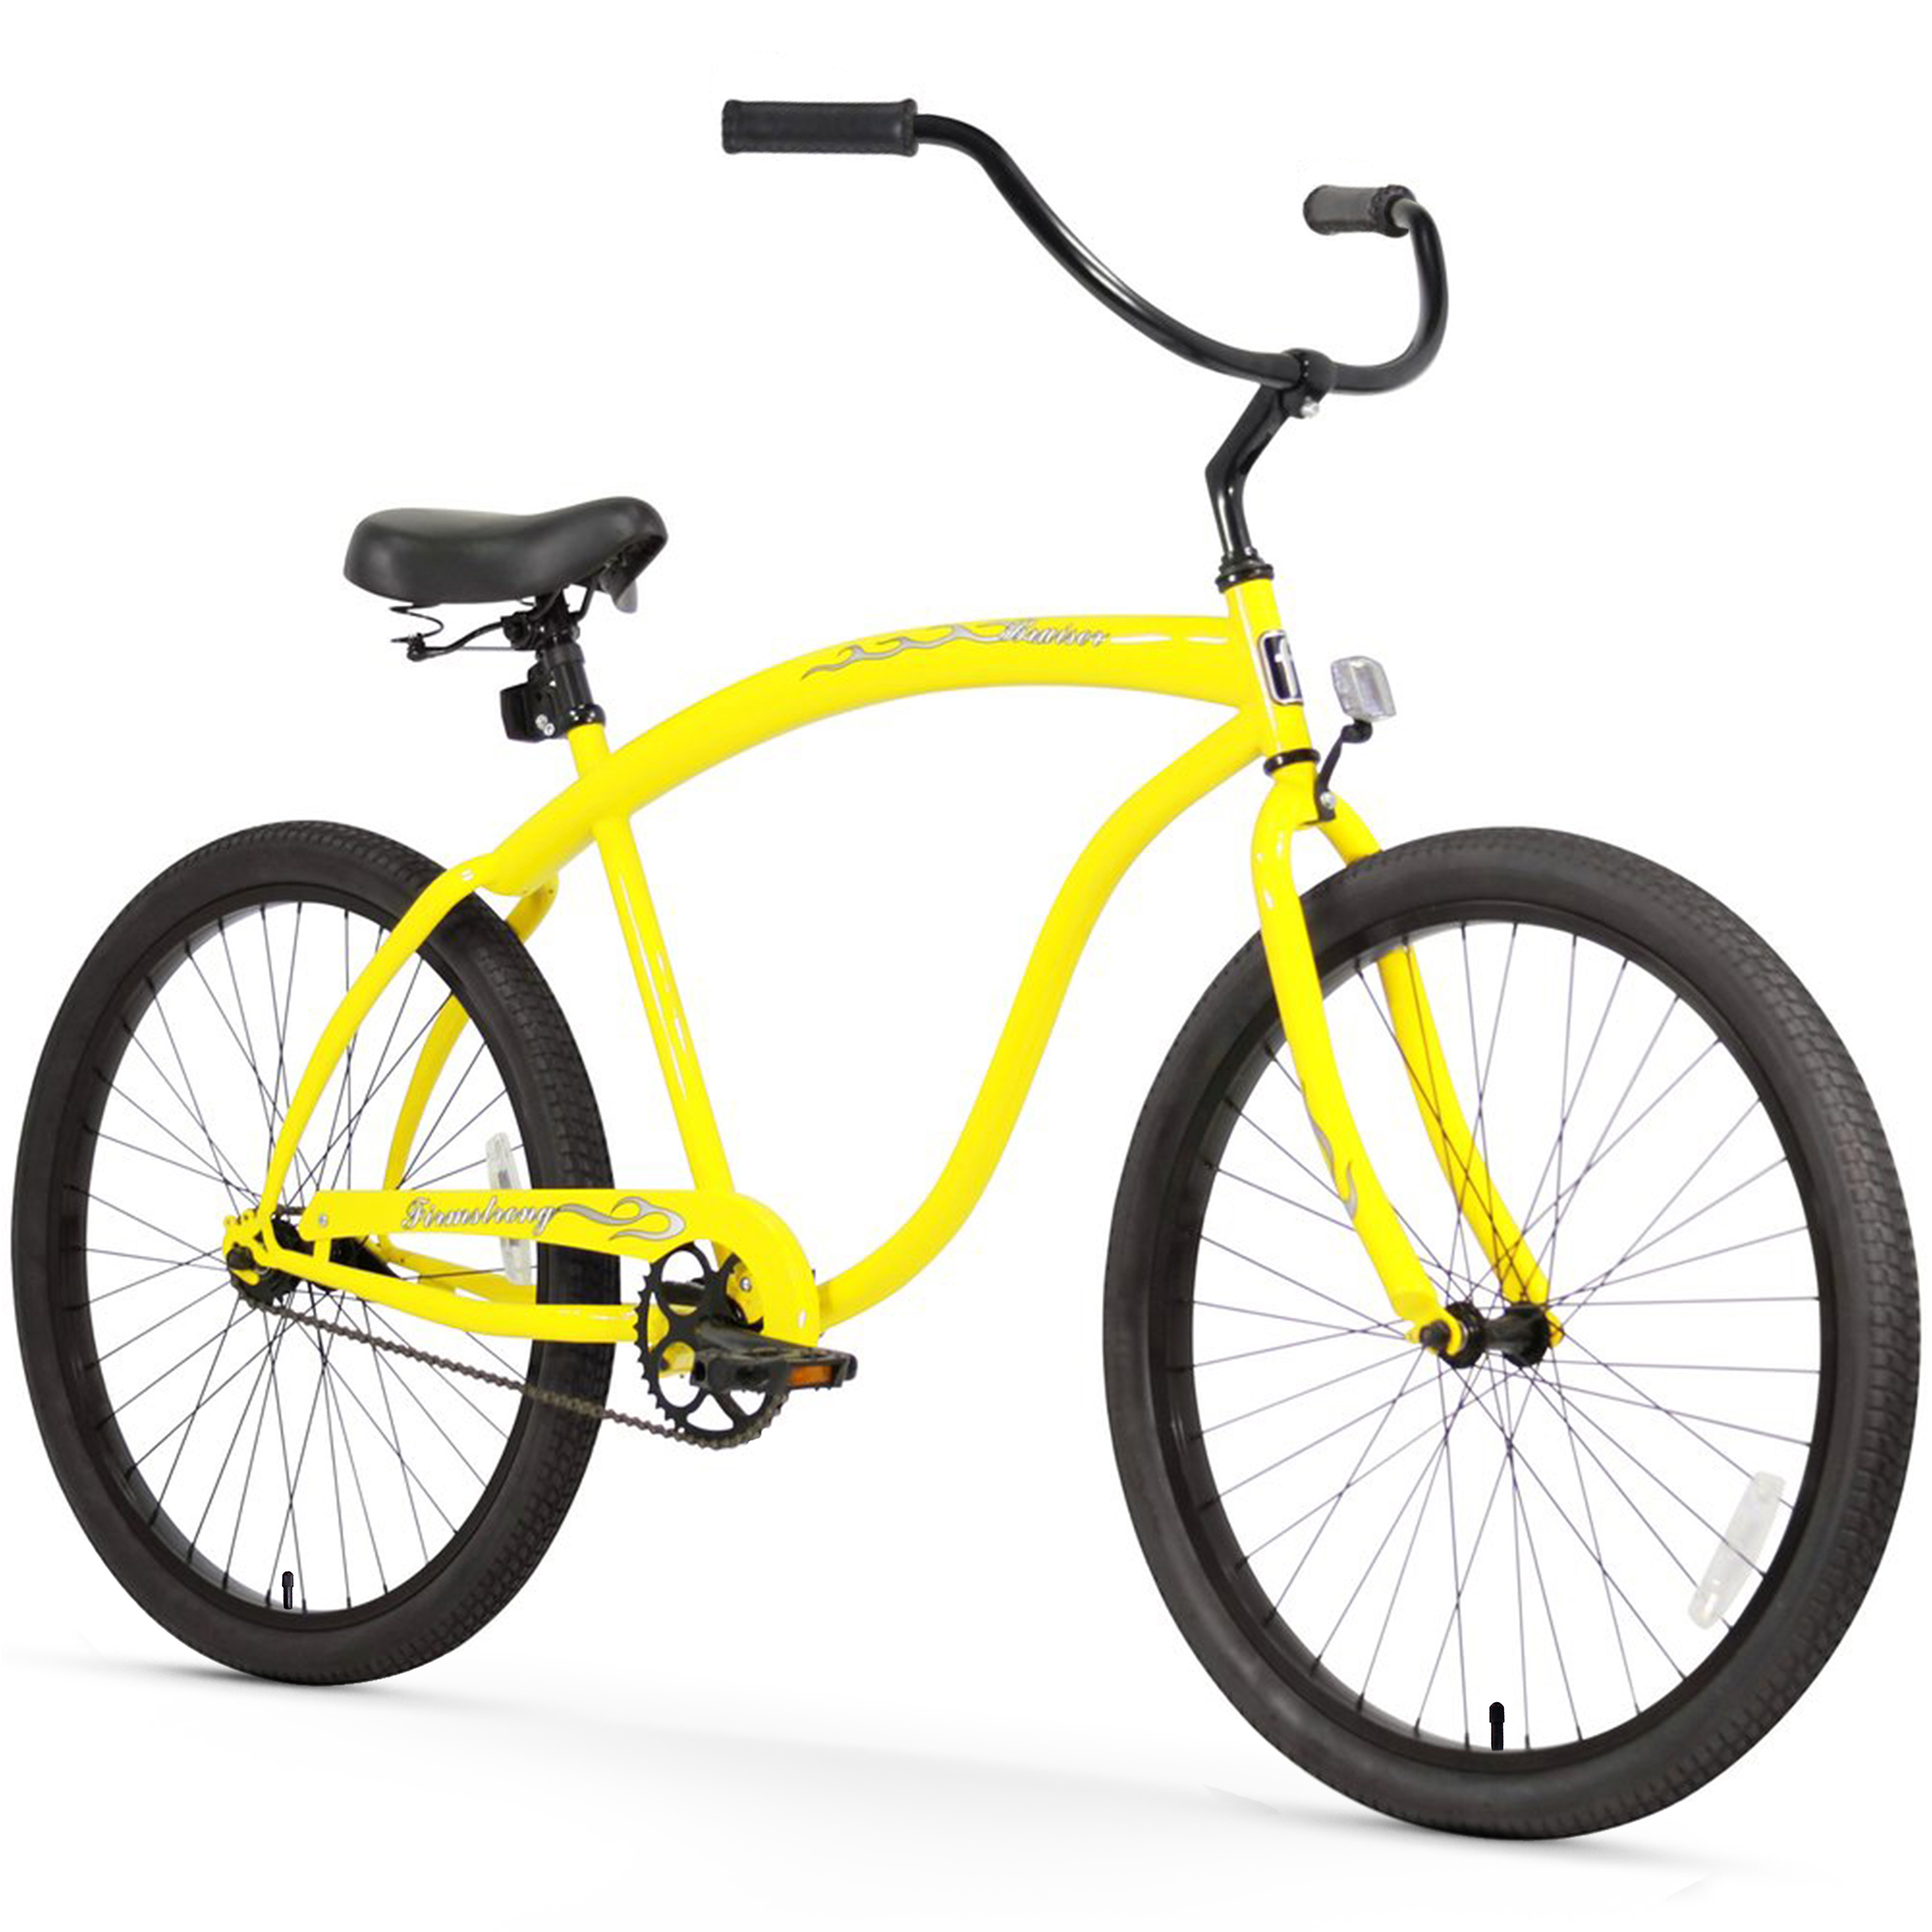 "Firmstrong 26"" Men's Bruiser Beach Cruiser Bicycle, 1, 3 and 7 Speed"